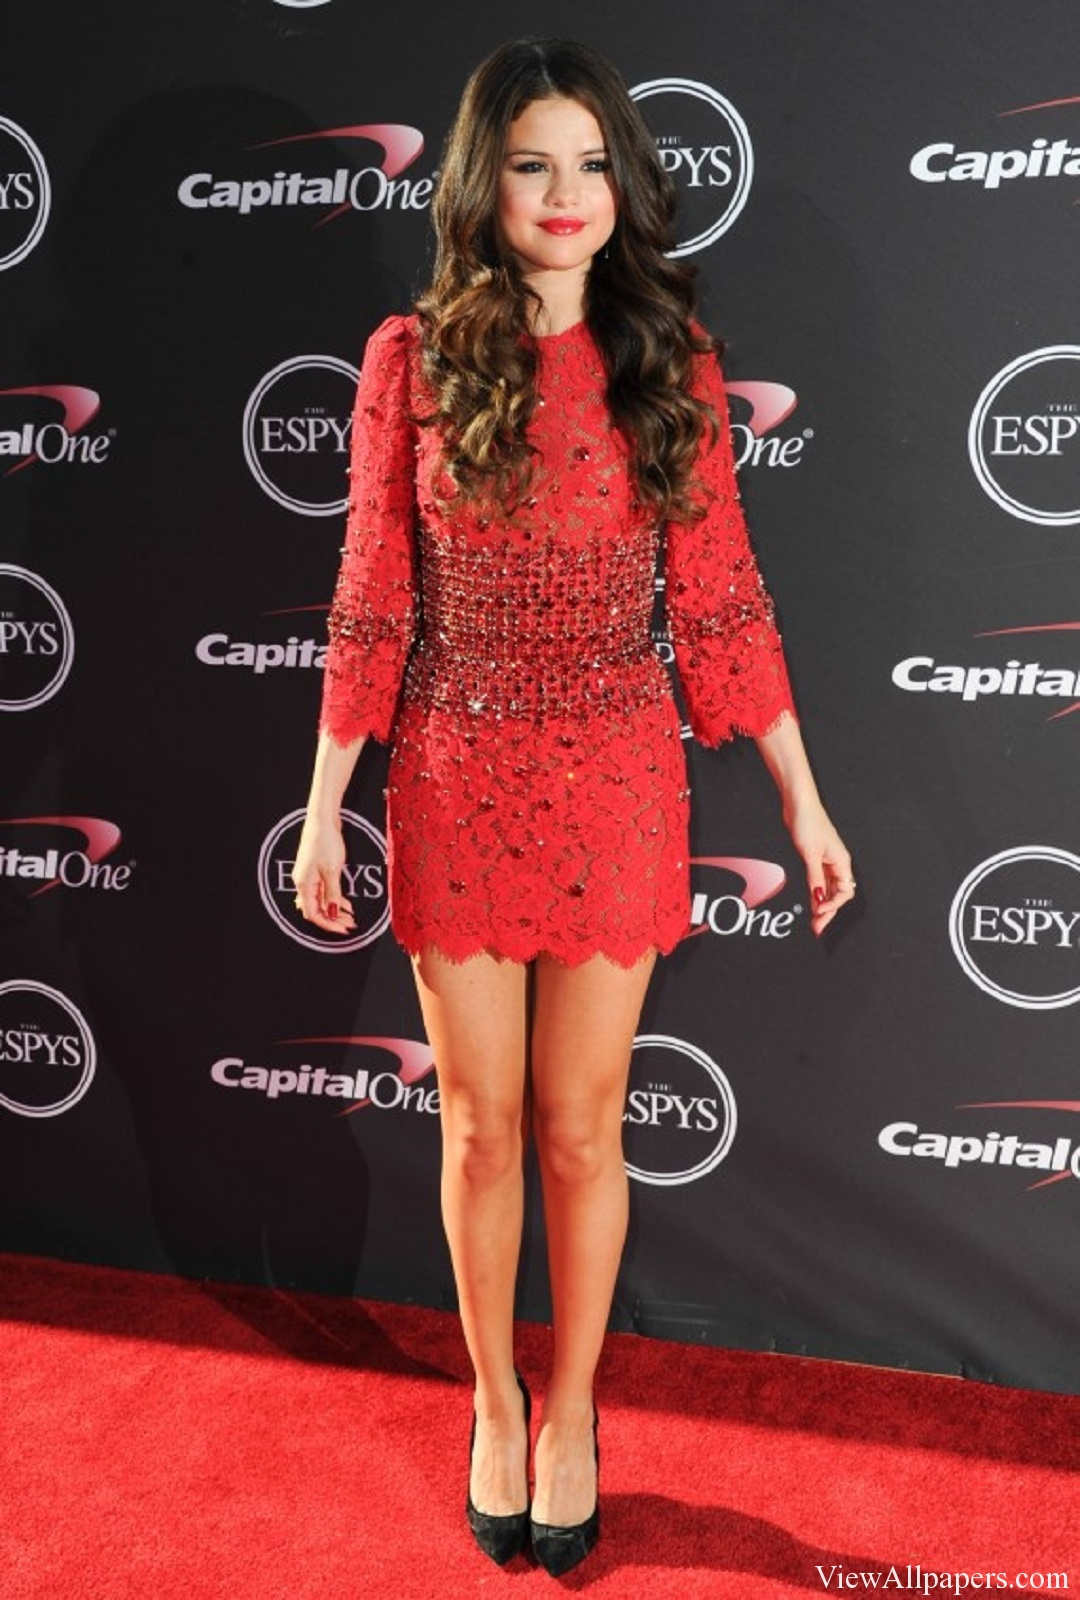 Great Legs High Resolution download Selena Gomez Great Legs 1080x1600